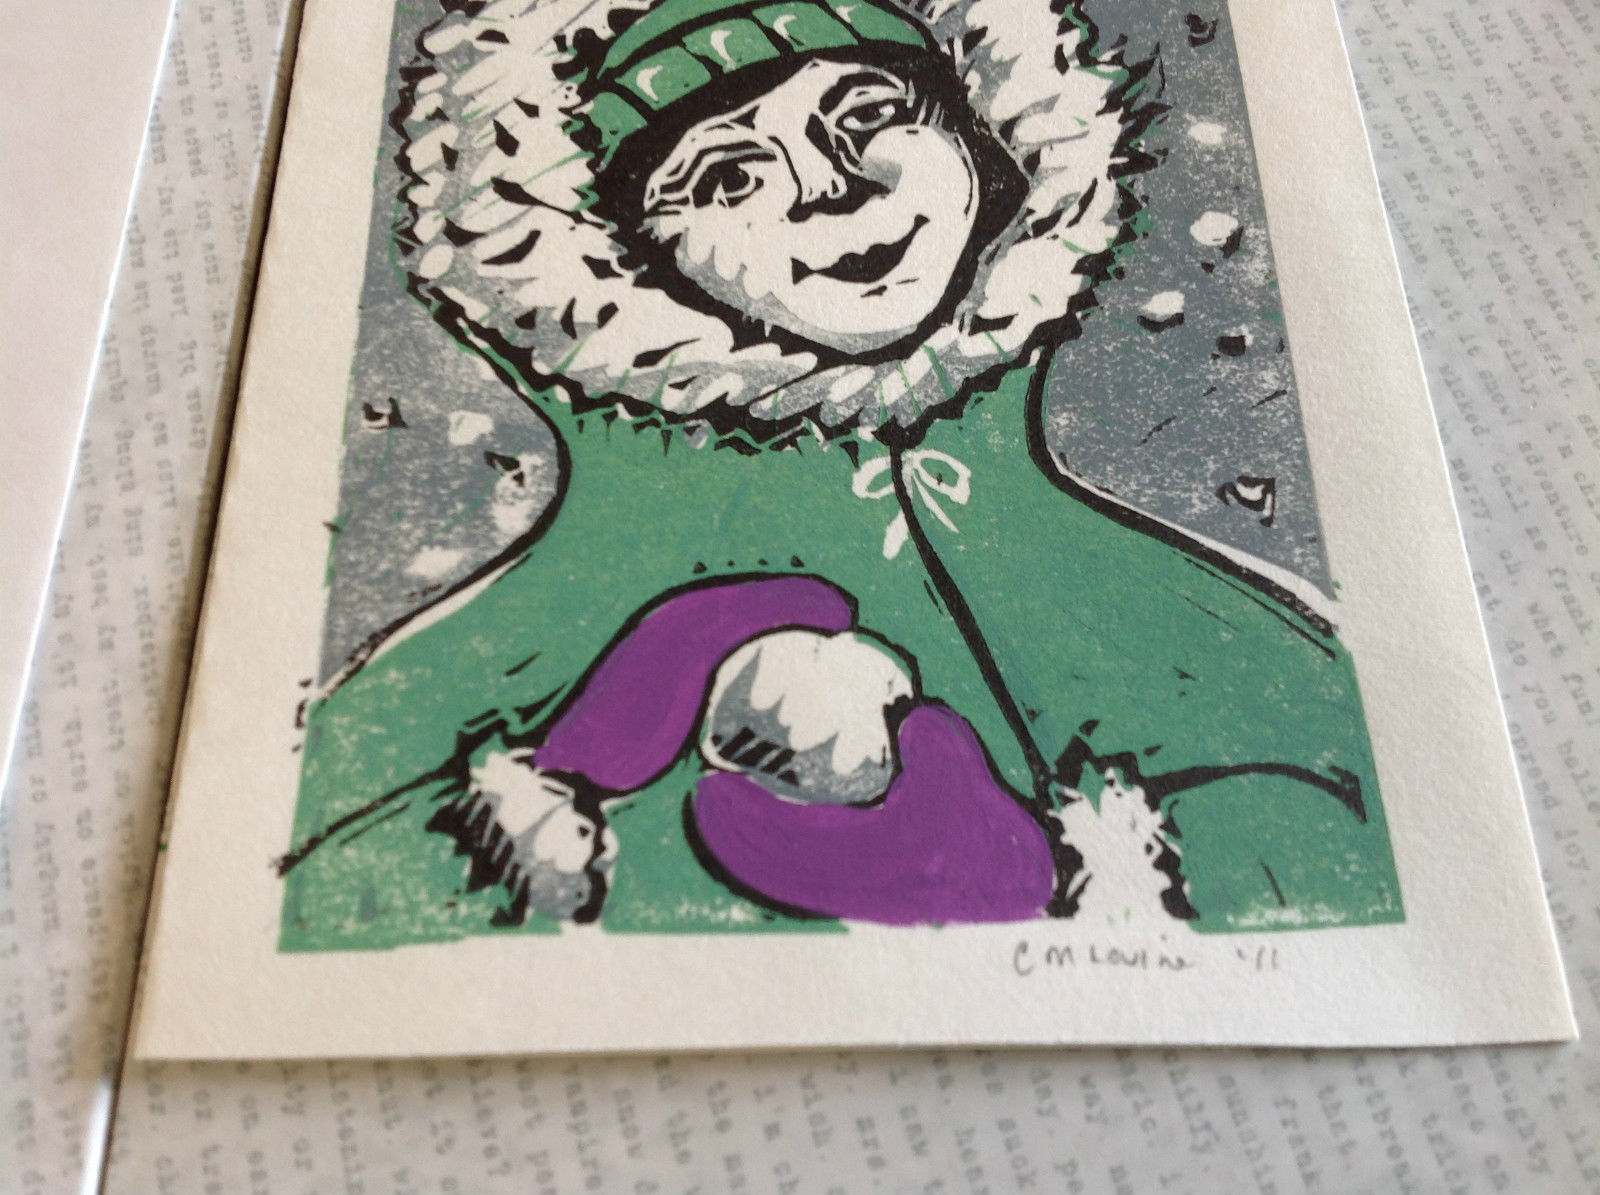 Kid with Snowball Original Wood Block Handmade Greeting Card with Envelope Green